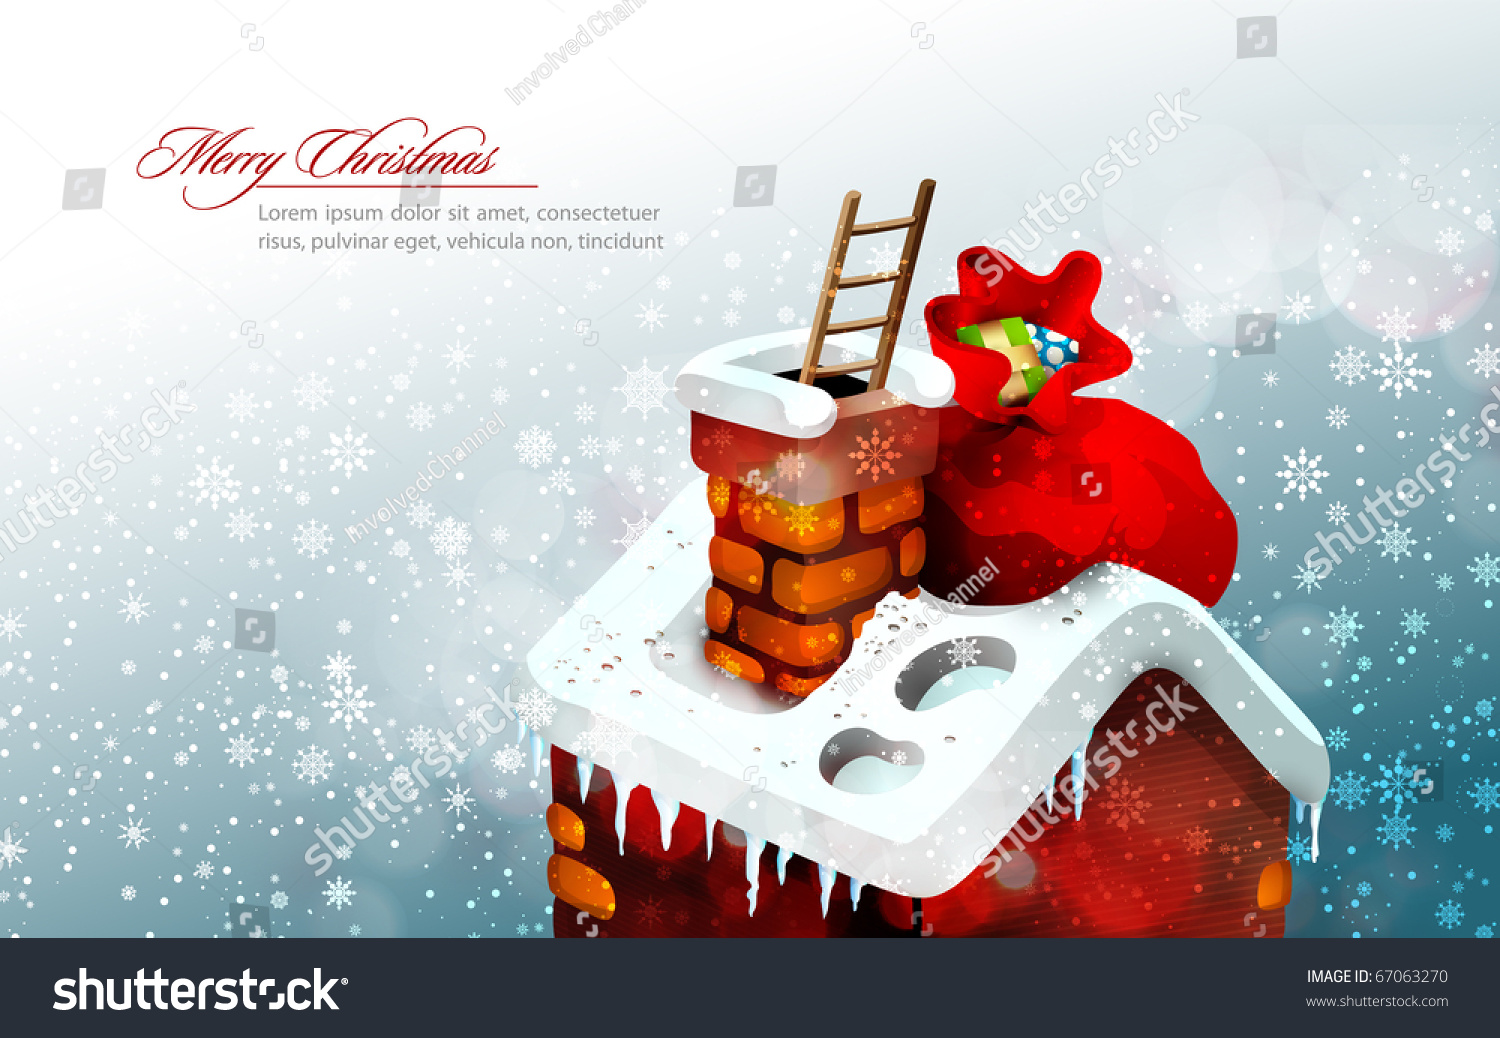 5d5c3c11d37e1 Christmas Scene with Cute House and a large gift bag that that Santa Claus  left there